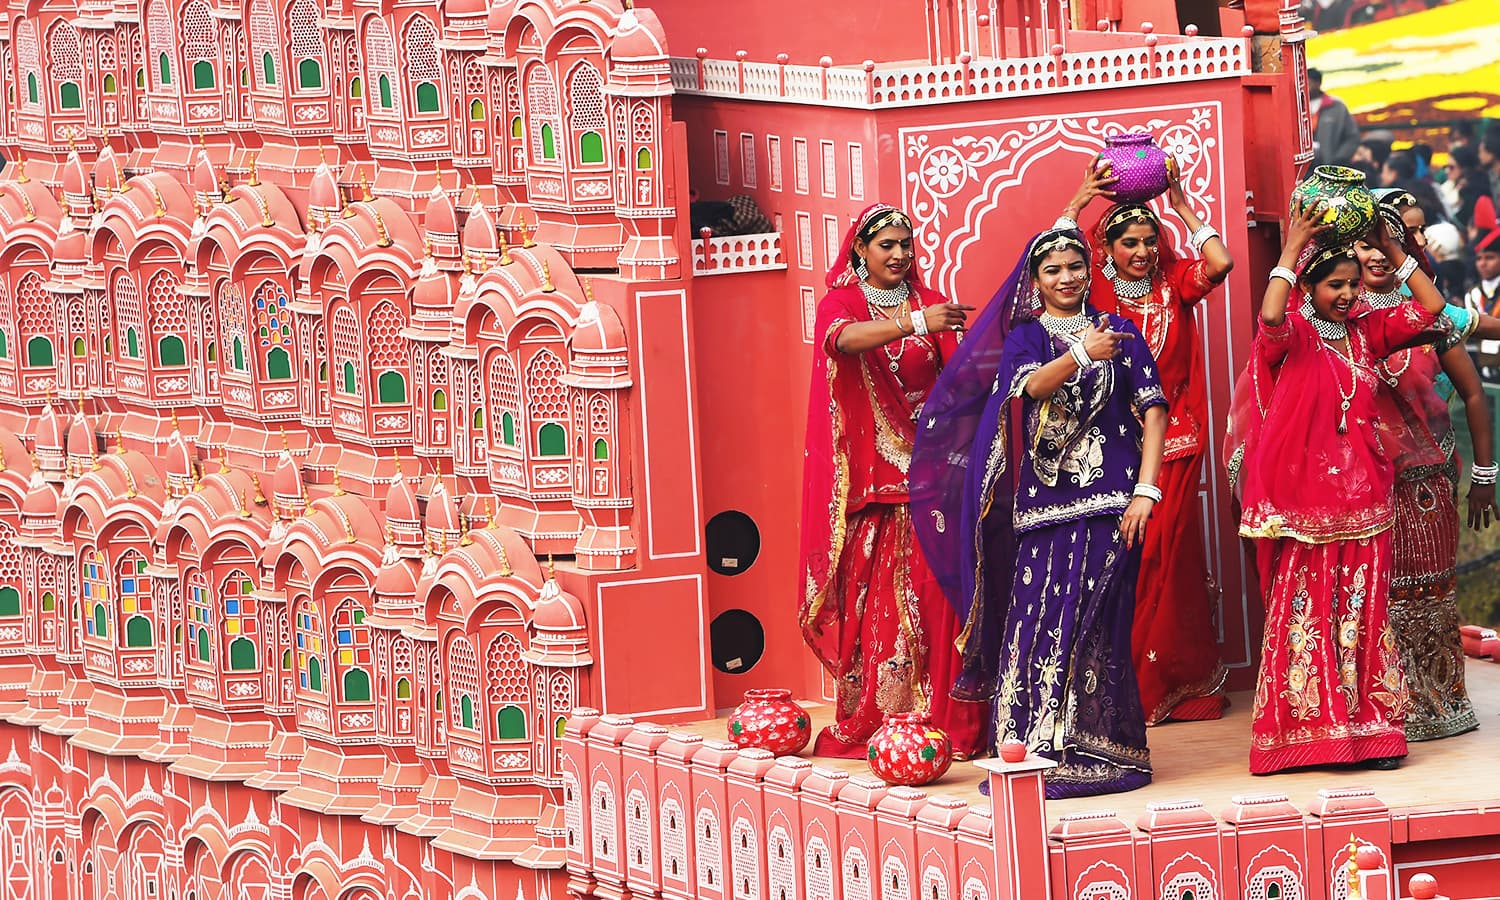 Women wearing traditional clothes from the state of Rajasthan ride a float during India's Republic Day parade. ─ AFP